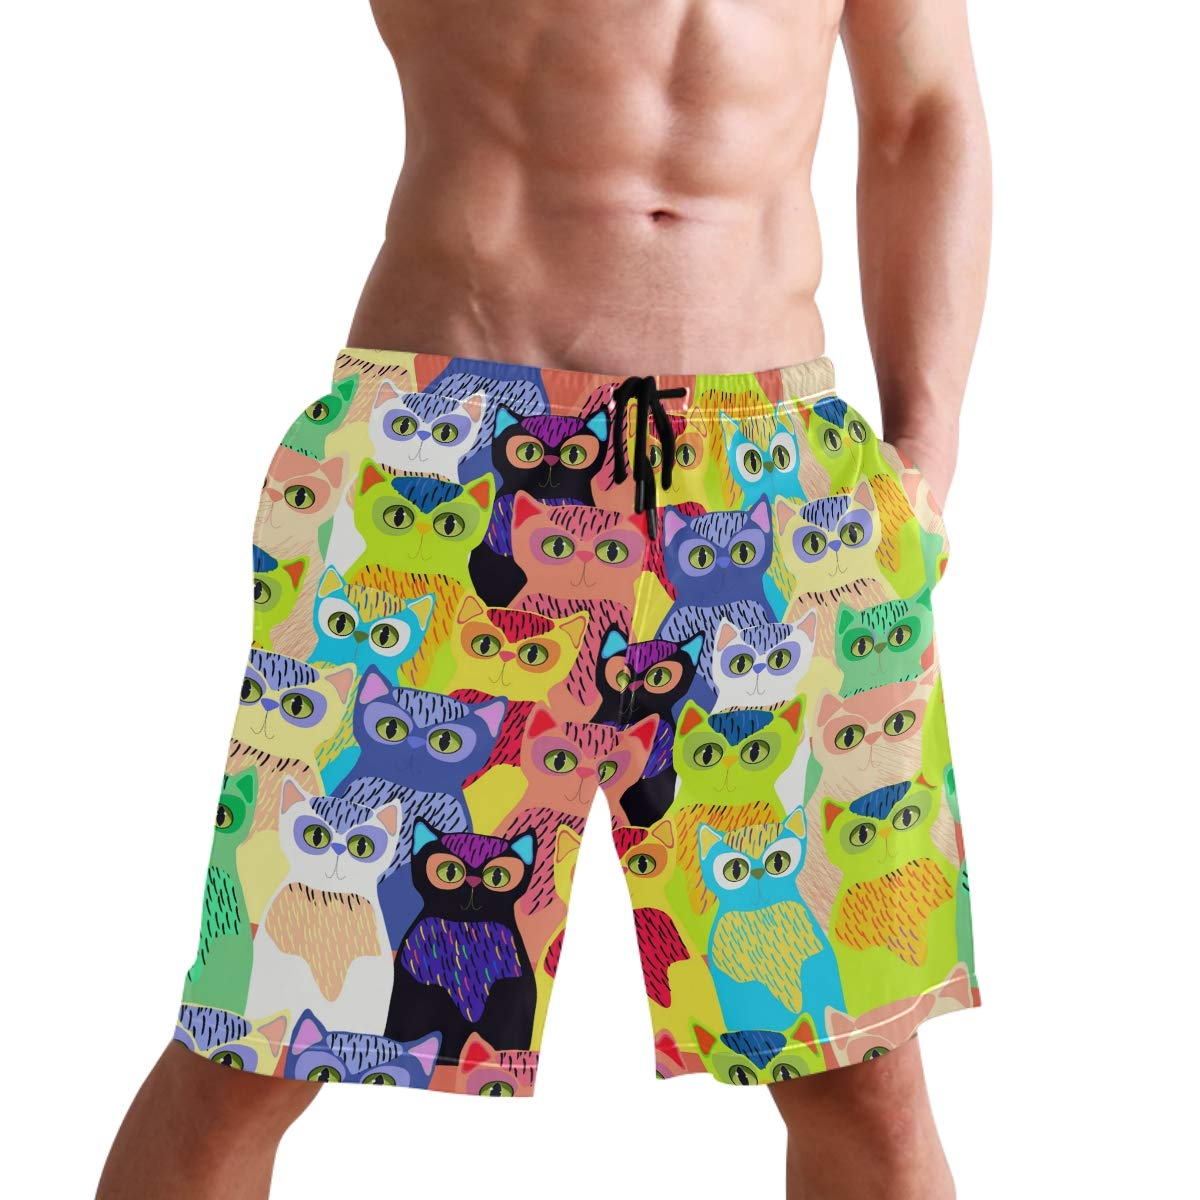 Mens Swim Trunks Cute Colorful Cartoon Cats Beach Board Shorts with Lining